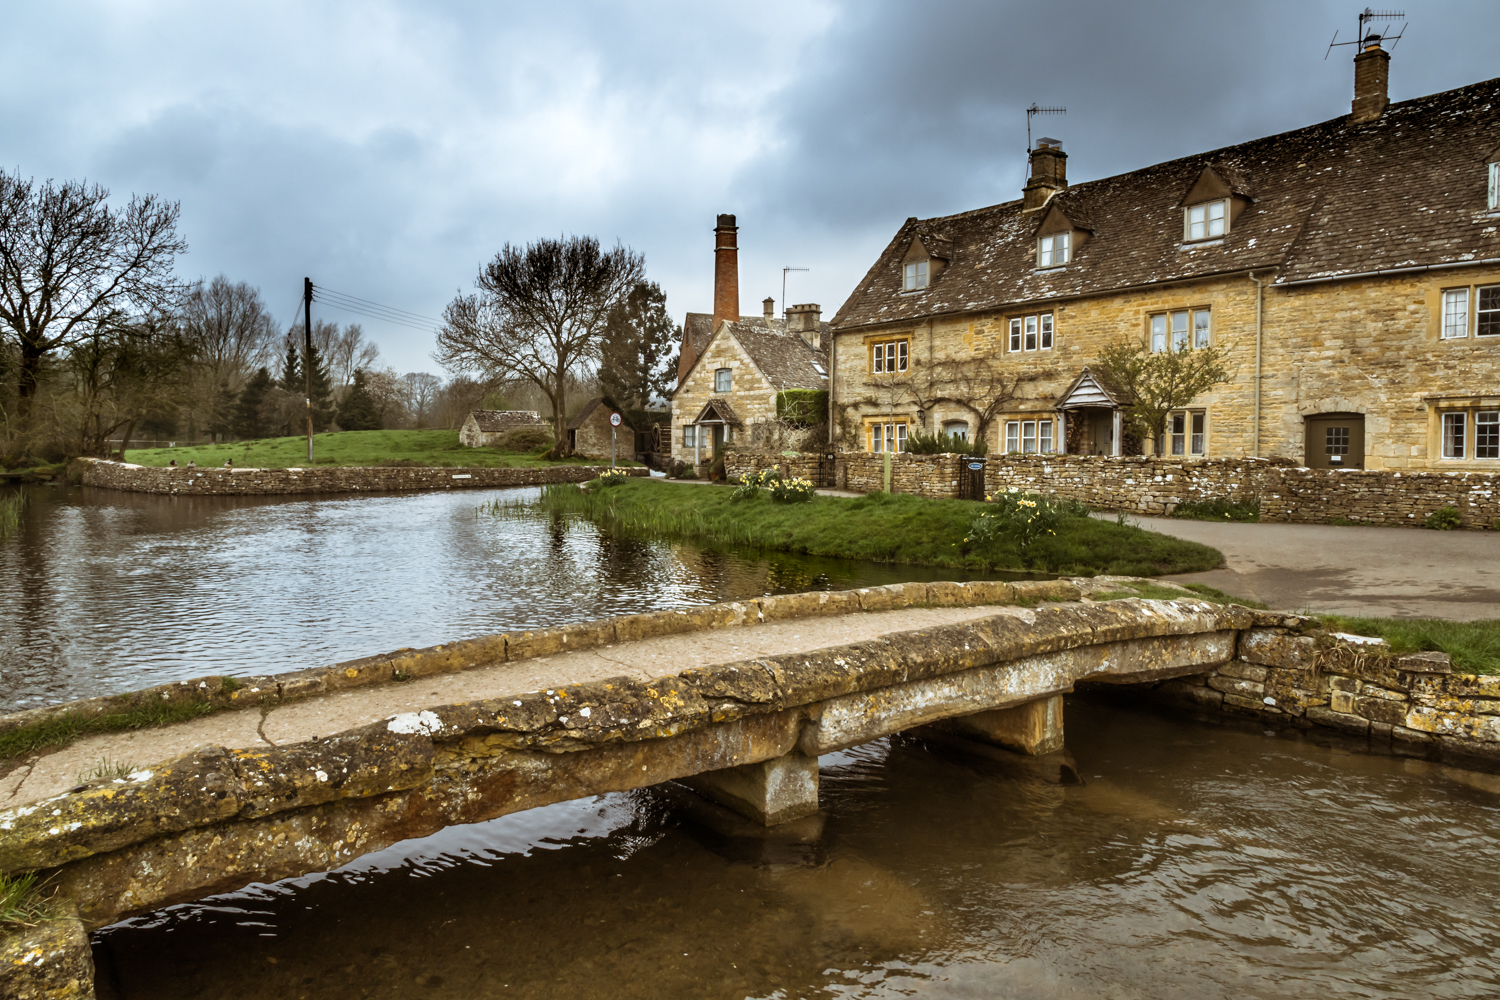 The Cotswolds - footbridge to the old mill at Lower Slaughter